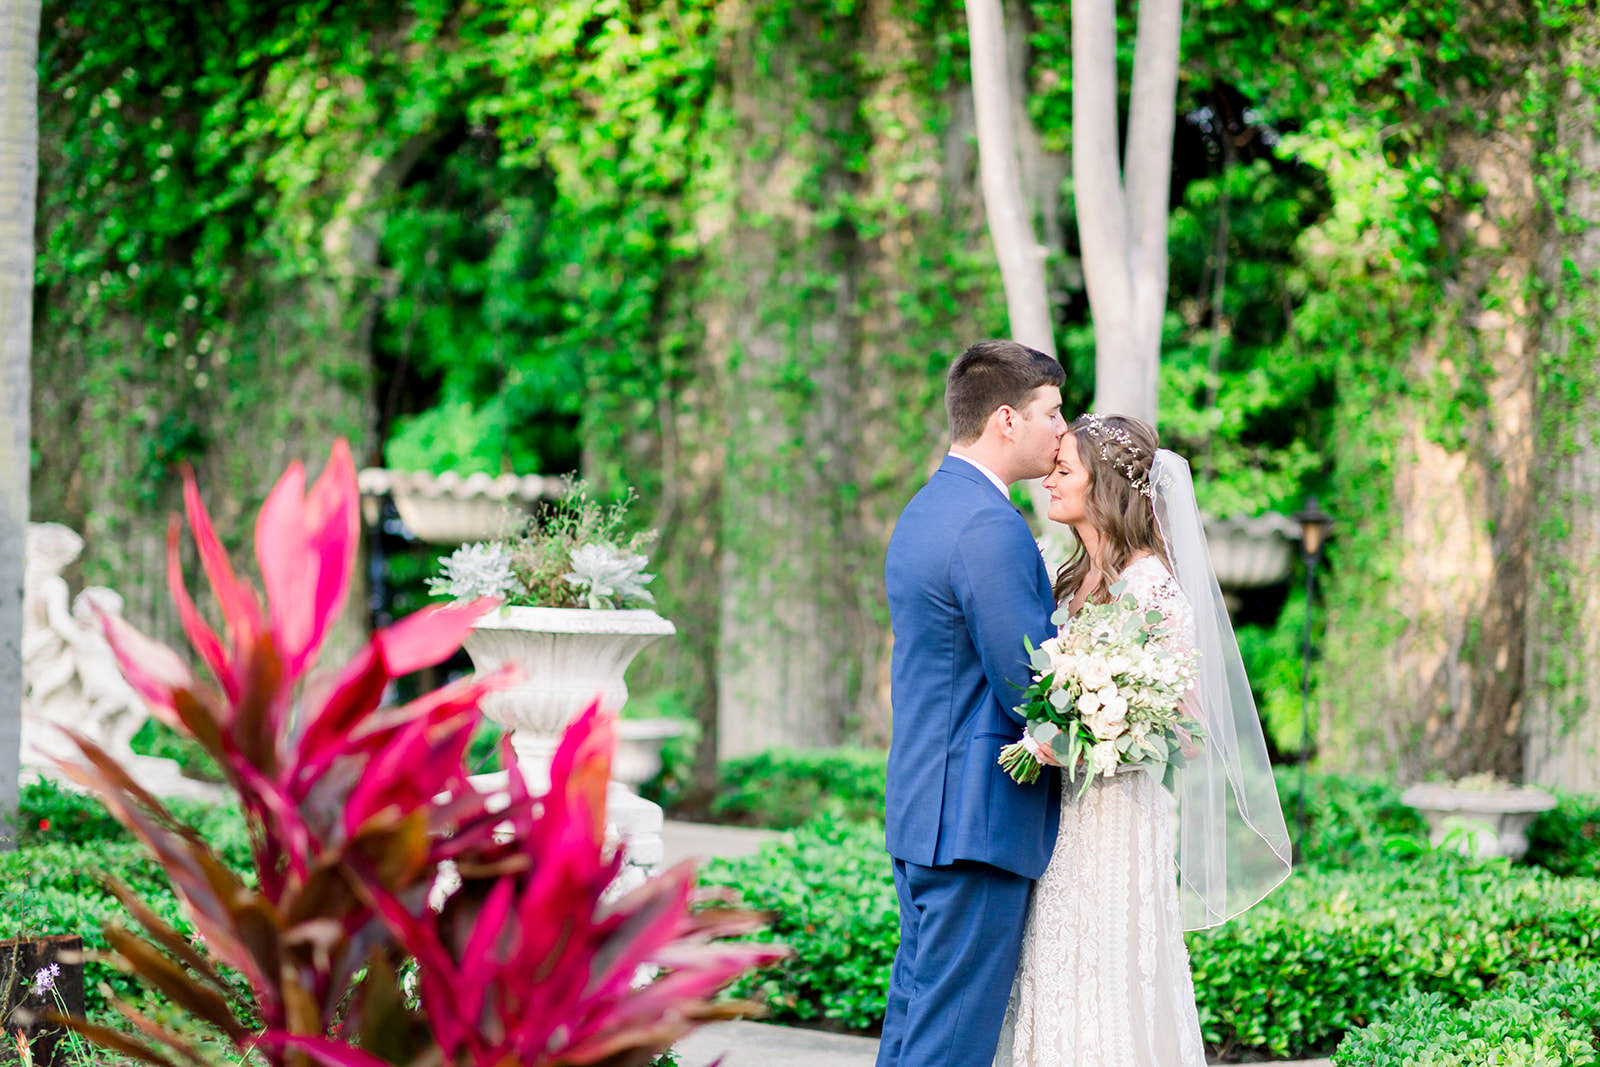 Boho Inspired Florida Bride and Groom in Outdoor Garden Courtyard, Groom in Navy Suit, Bride Holding White Floral Bouquet with Greenery Wedding Portrait | Tampa Bay Wedding Photographers Shauna and Jordon Photography